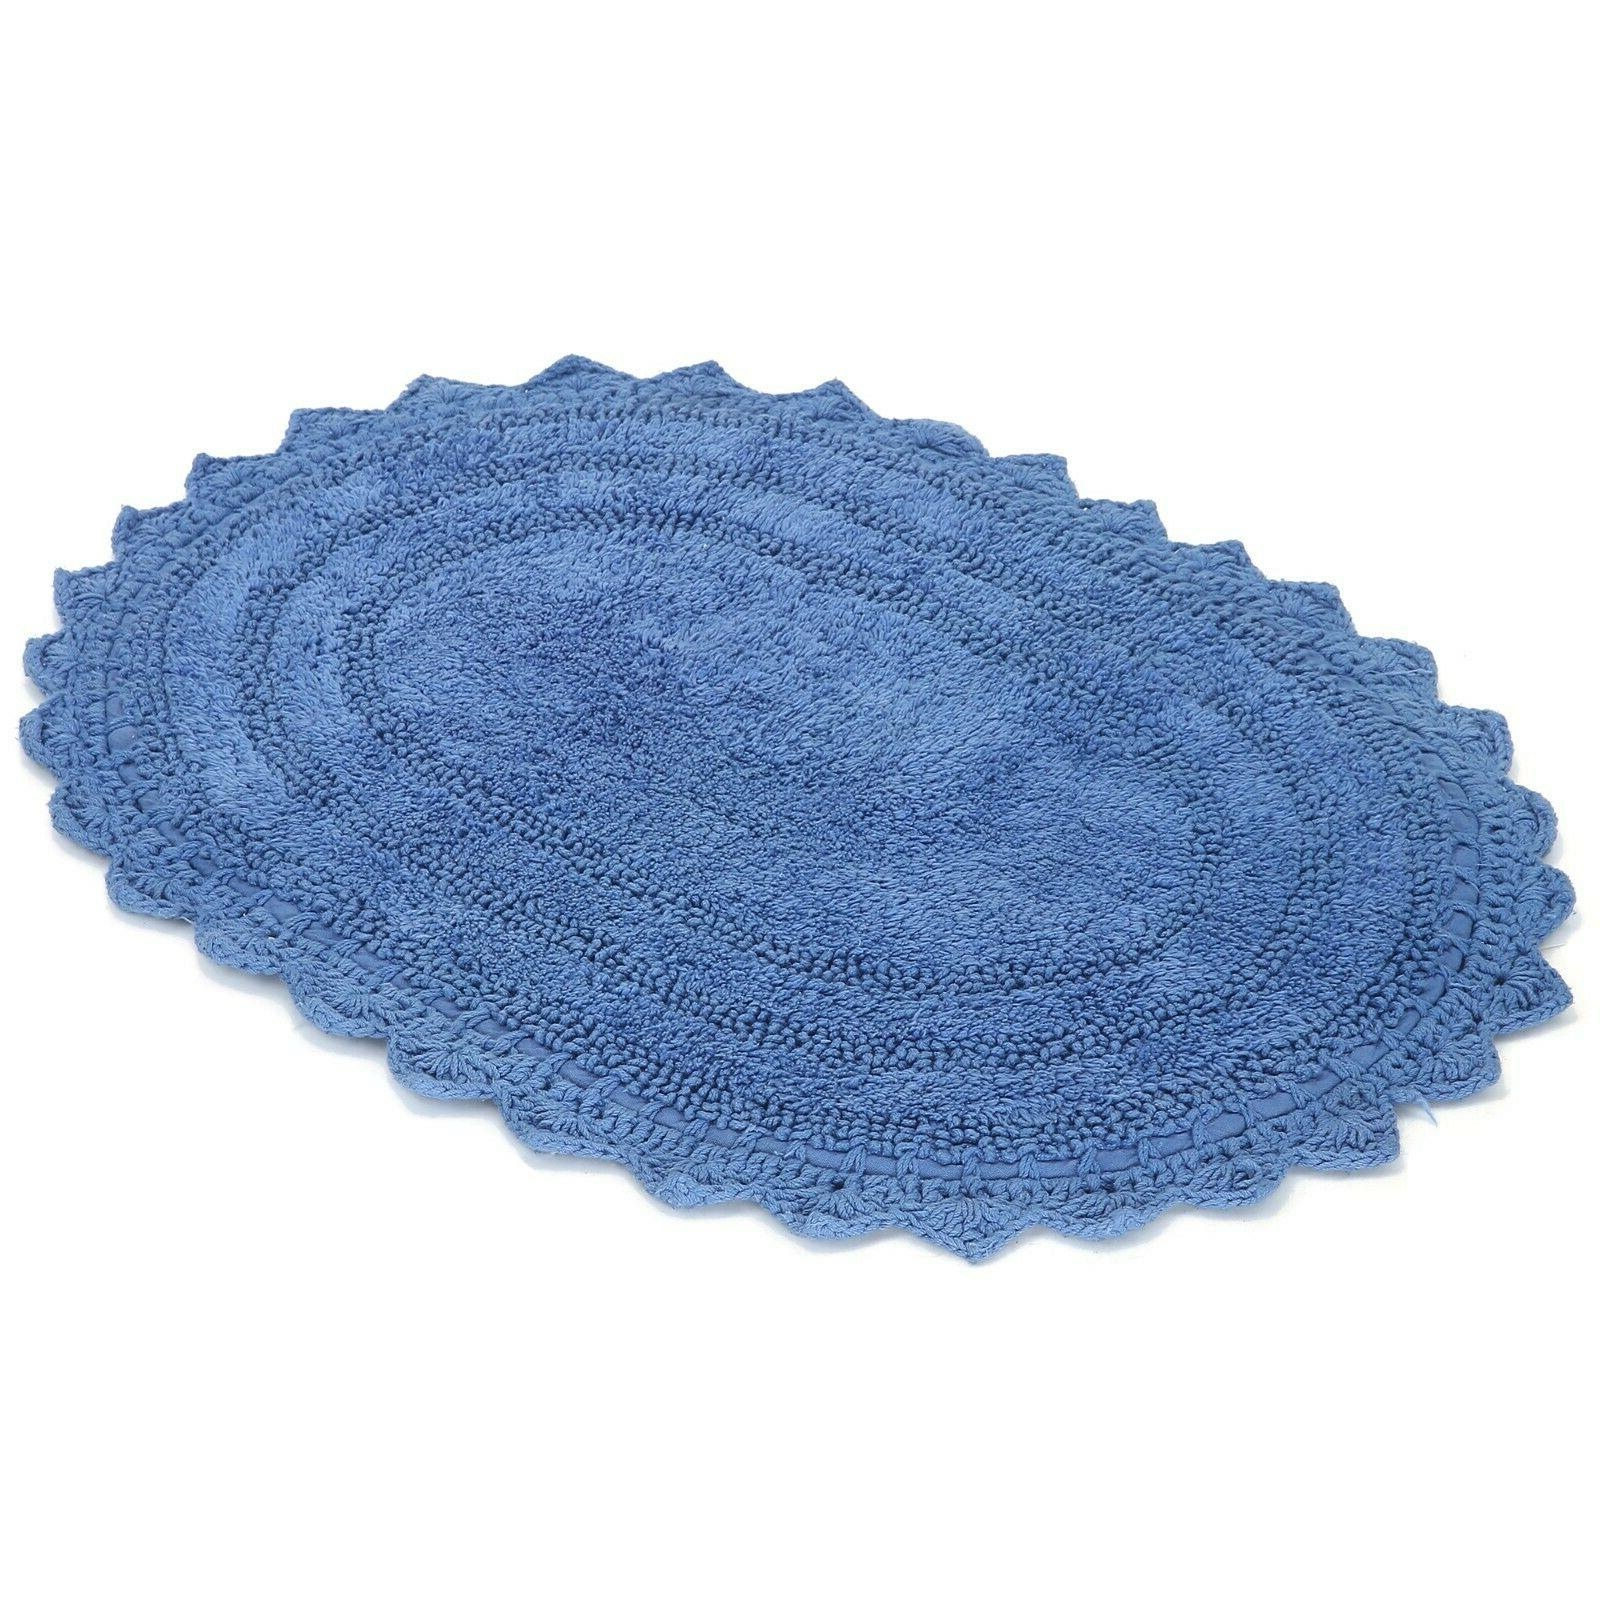 cotton bath mat rug 17x24 inches crochet